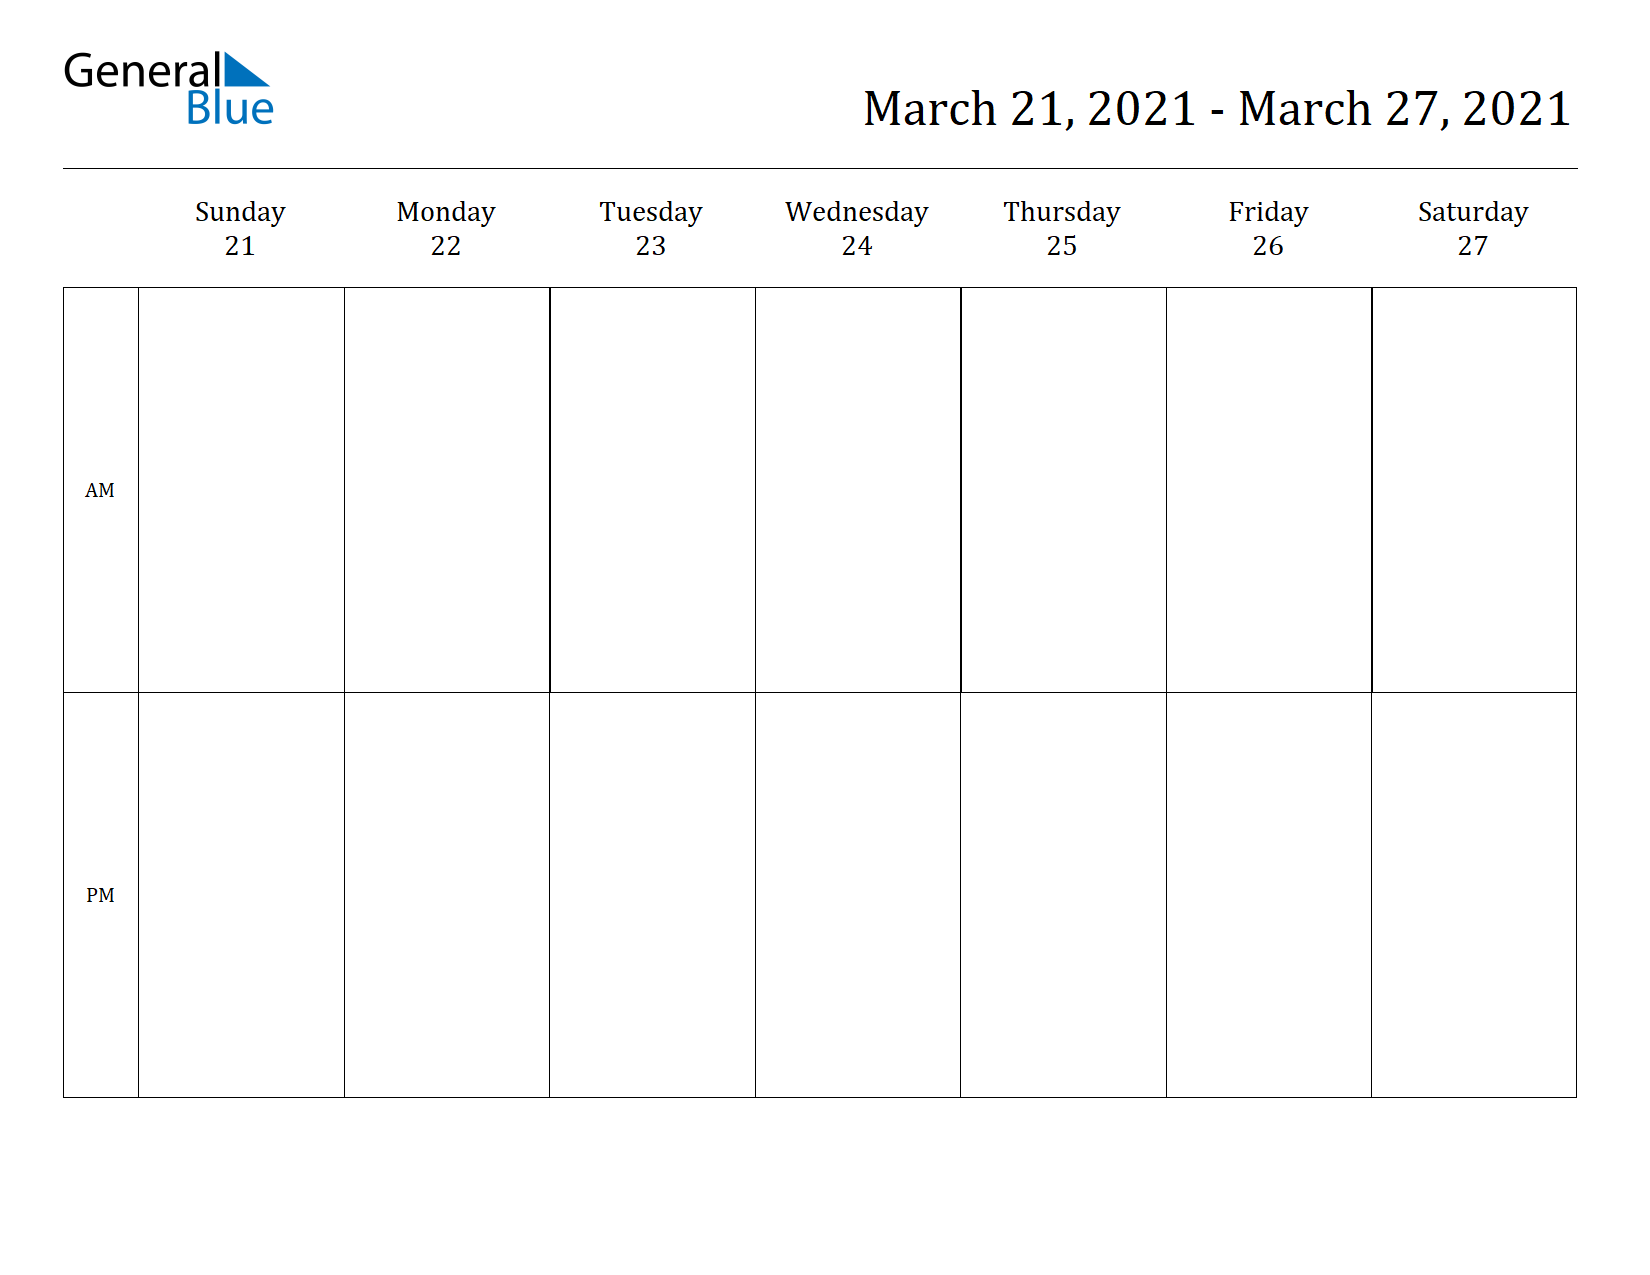 Weekly Calendar for Mar 21, 2021 to Mar 27, 2021